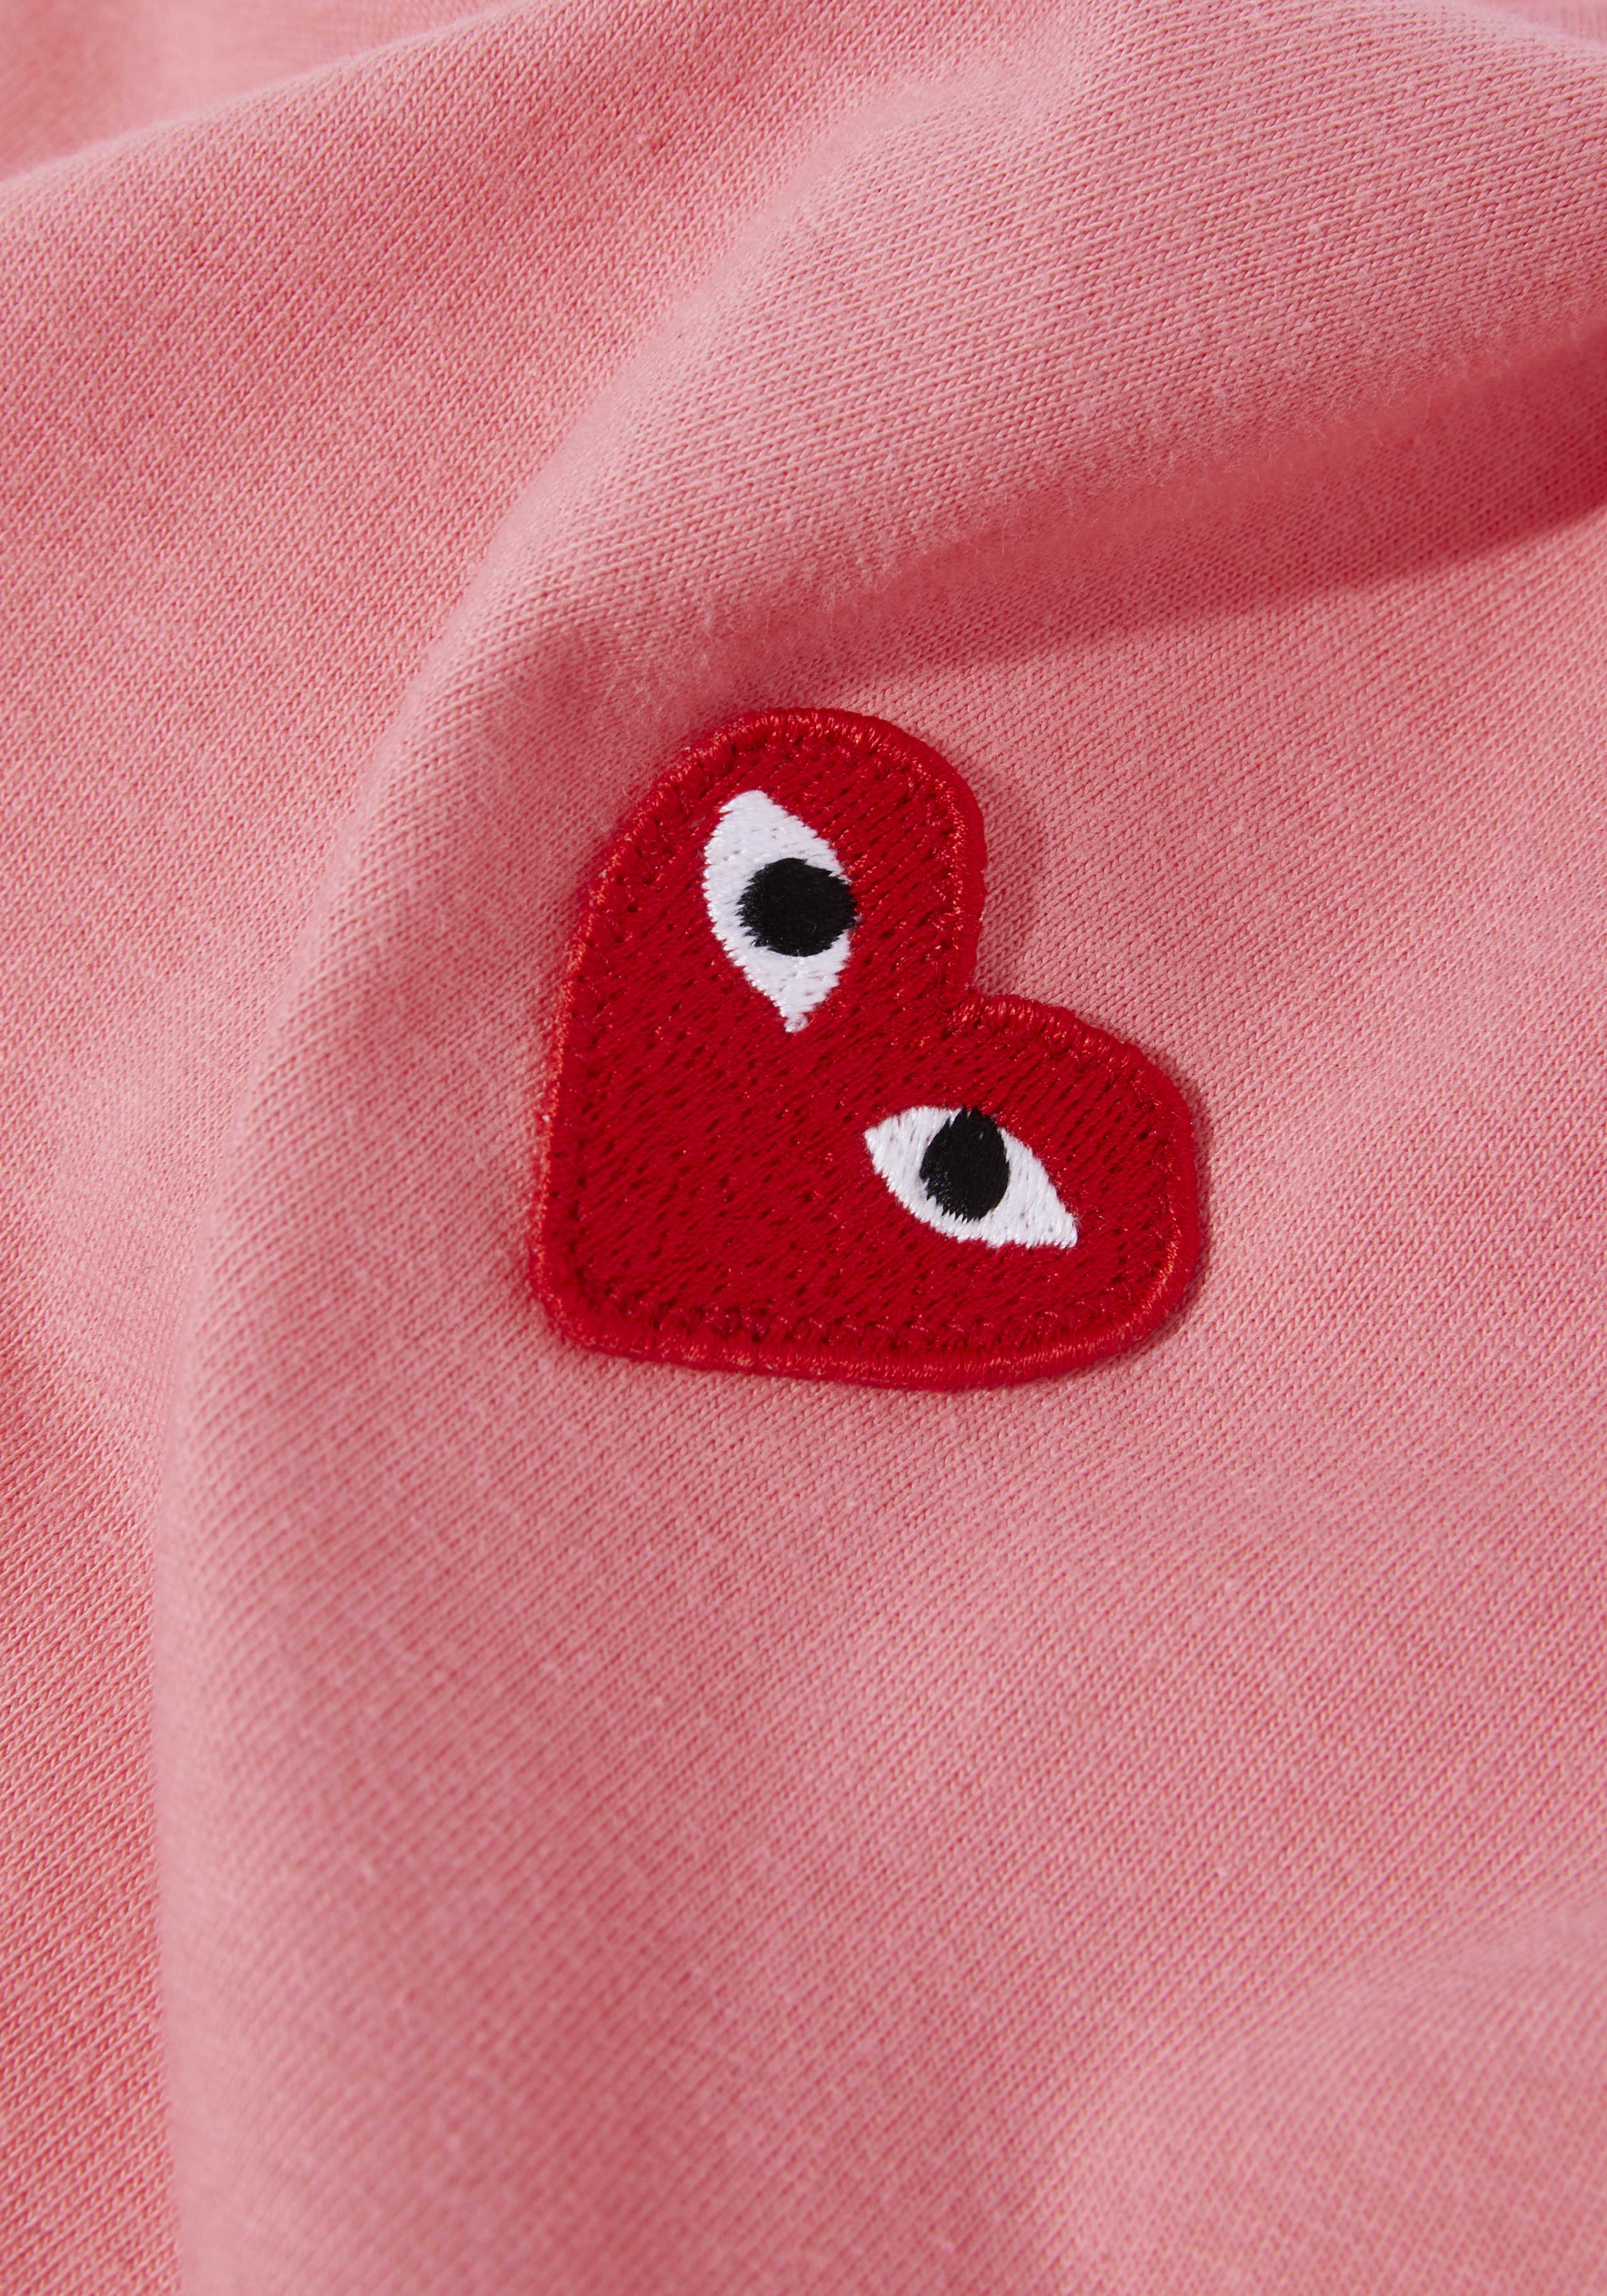 comme des garcons play bright red heart tee 5